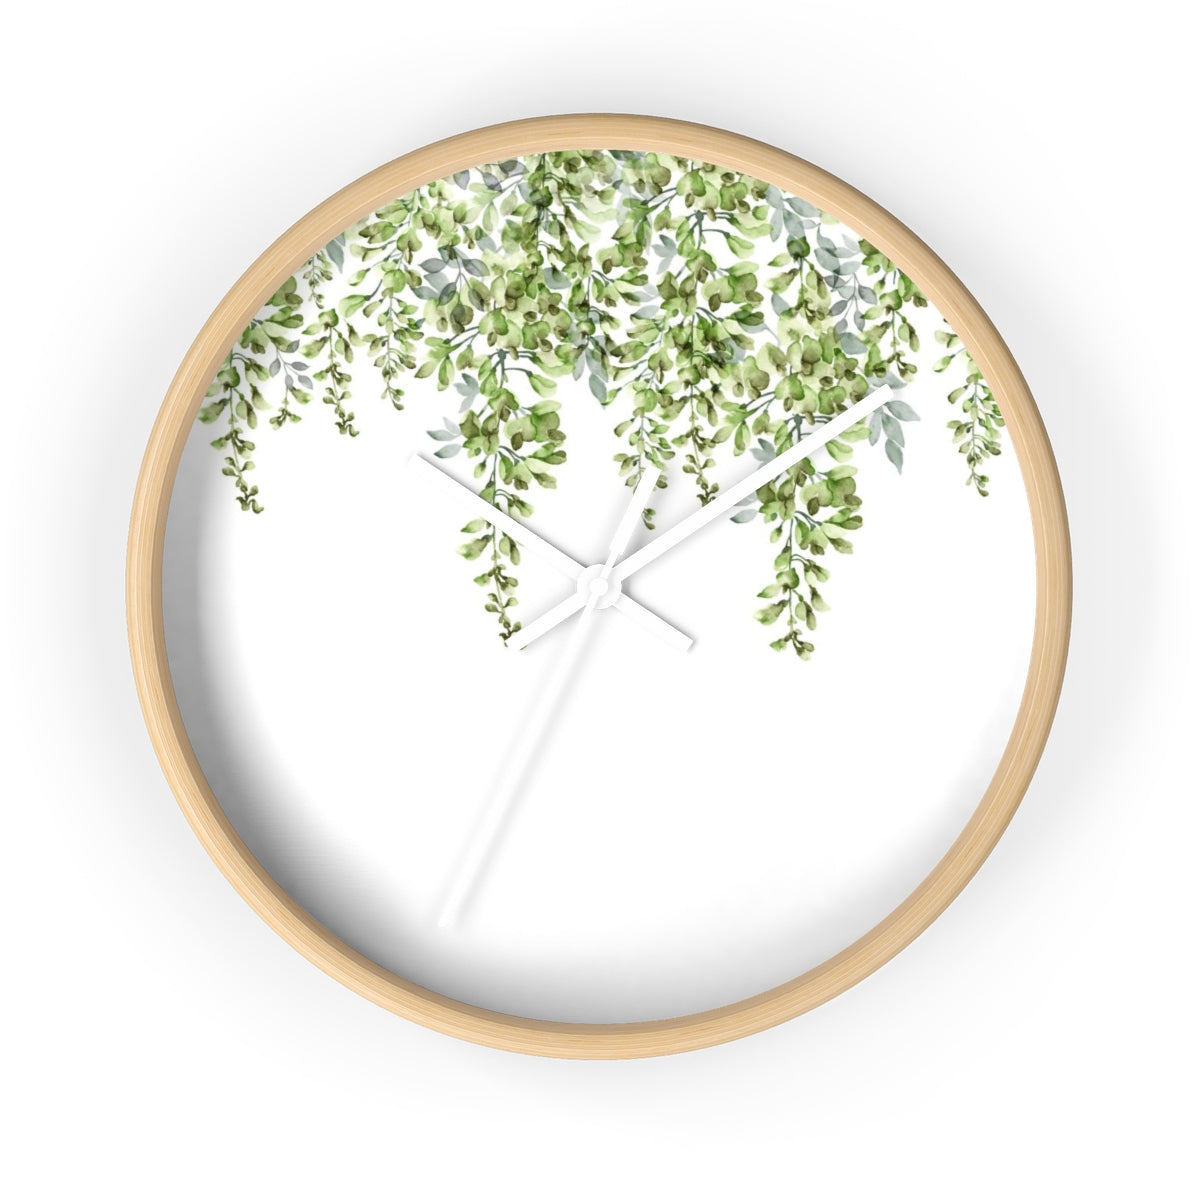 Wood round clock with green leaf - Liz Kapiloto Art & Design